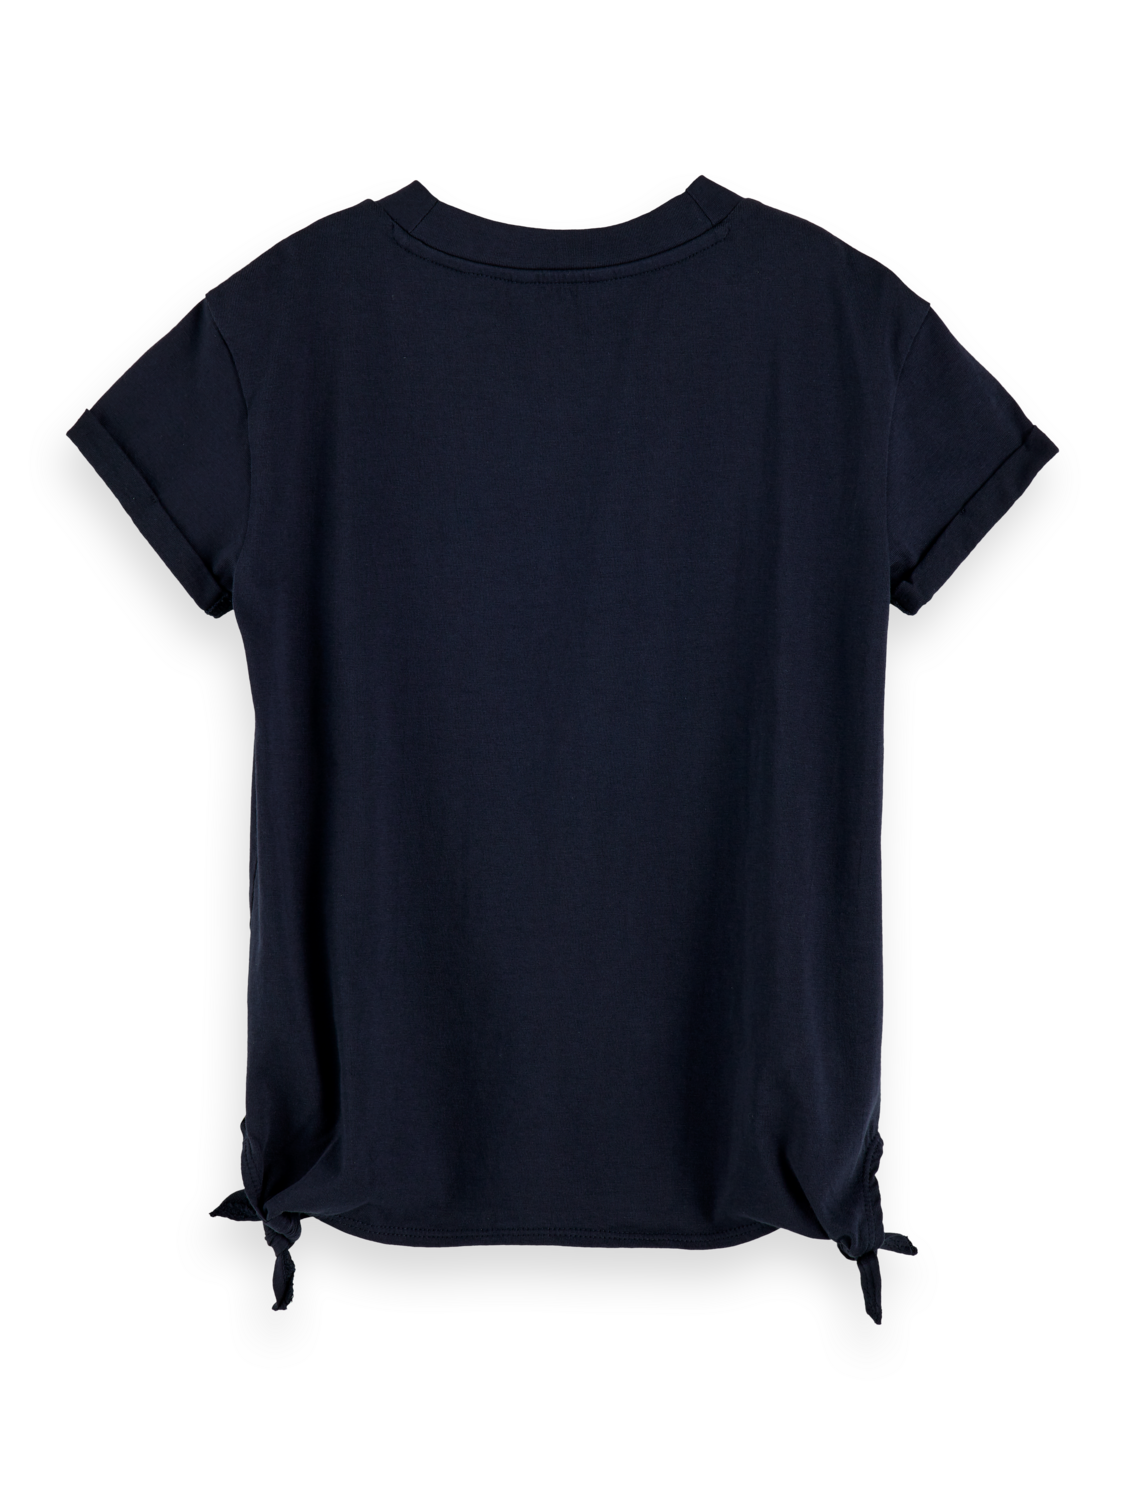 Flickor 100% cotton loose fit side knot t-shirt